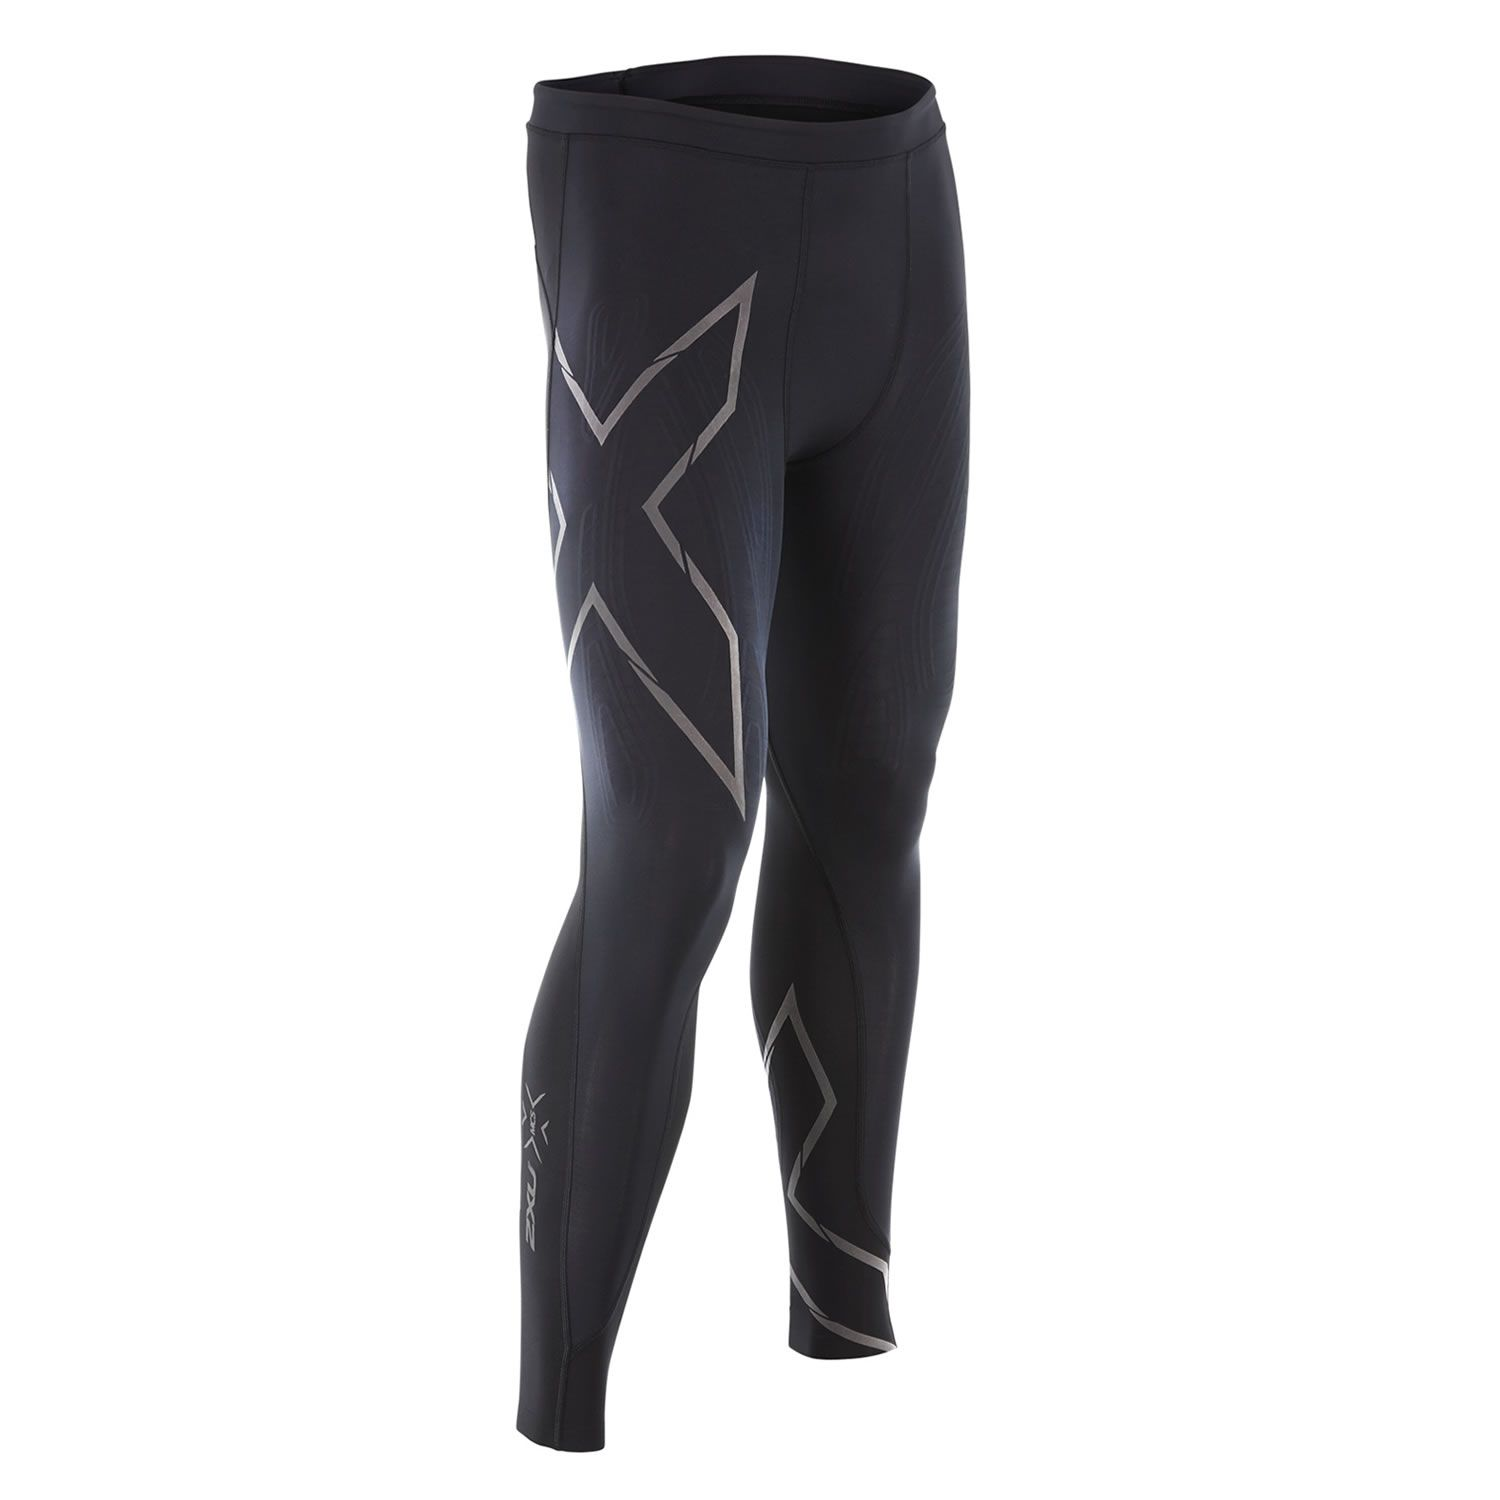 a23b2c9021a50 2XU Men's MCS Run Compression MA4411 Comp Tights, Black/Nero, Large ...